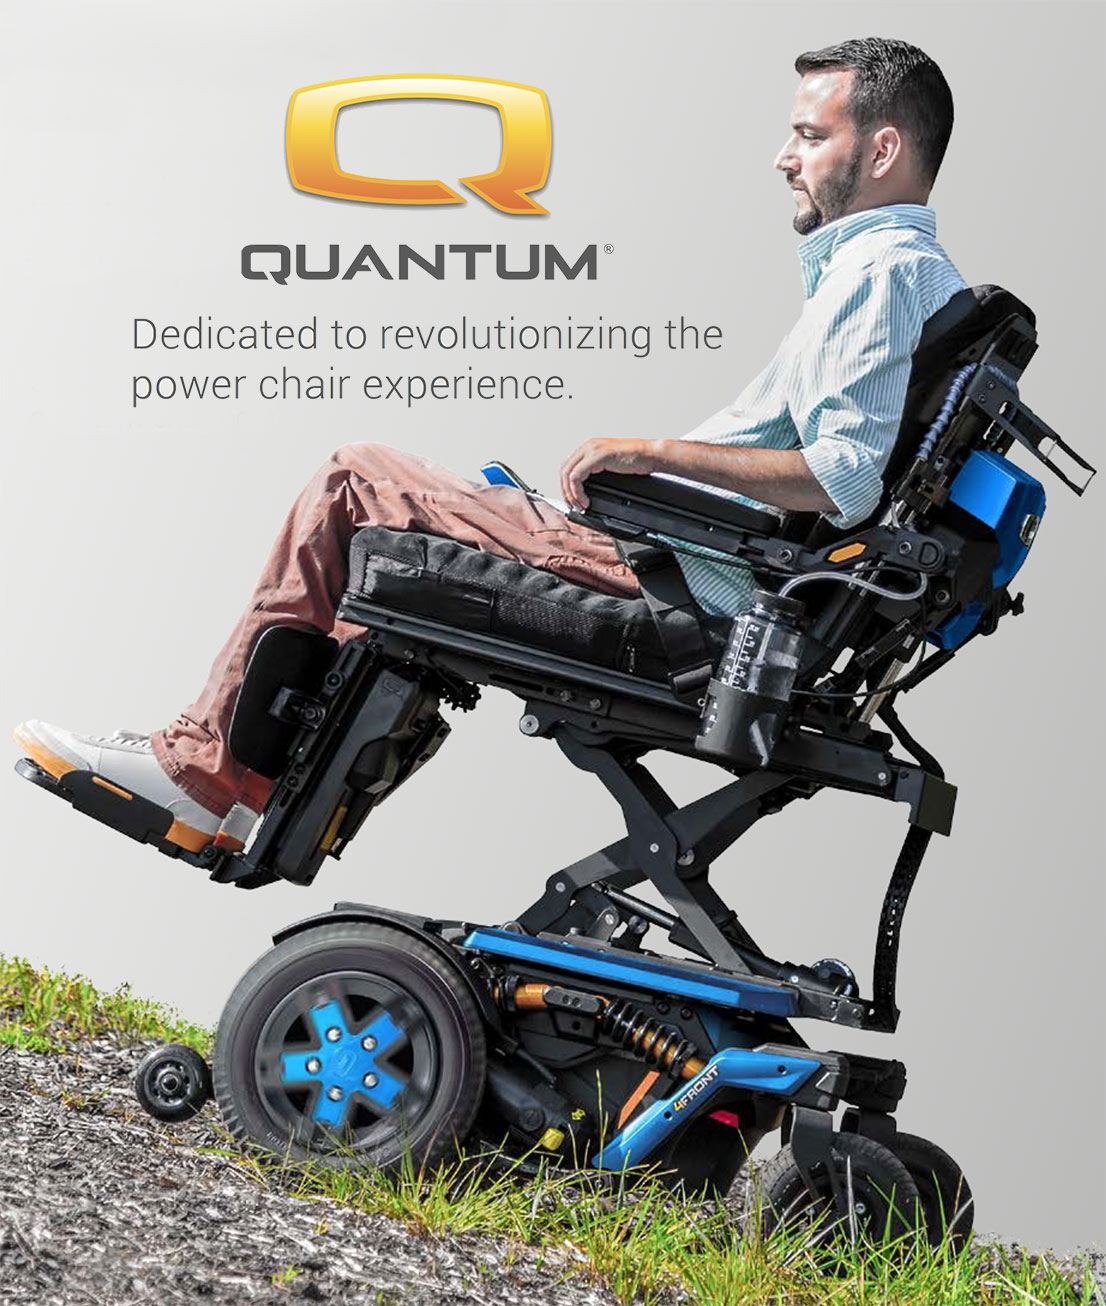 Quantum Chair Quantum Dedicated To Revolutionizing The Power Chair